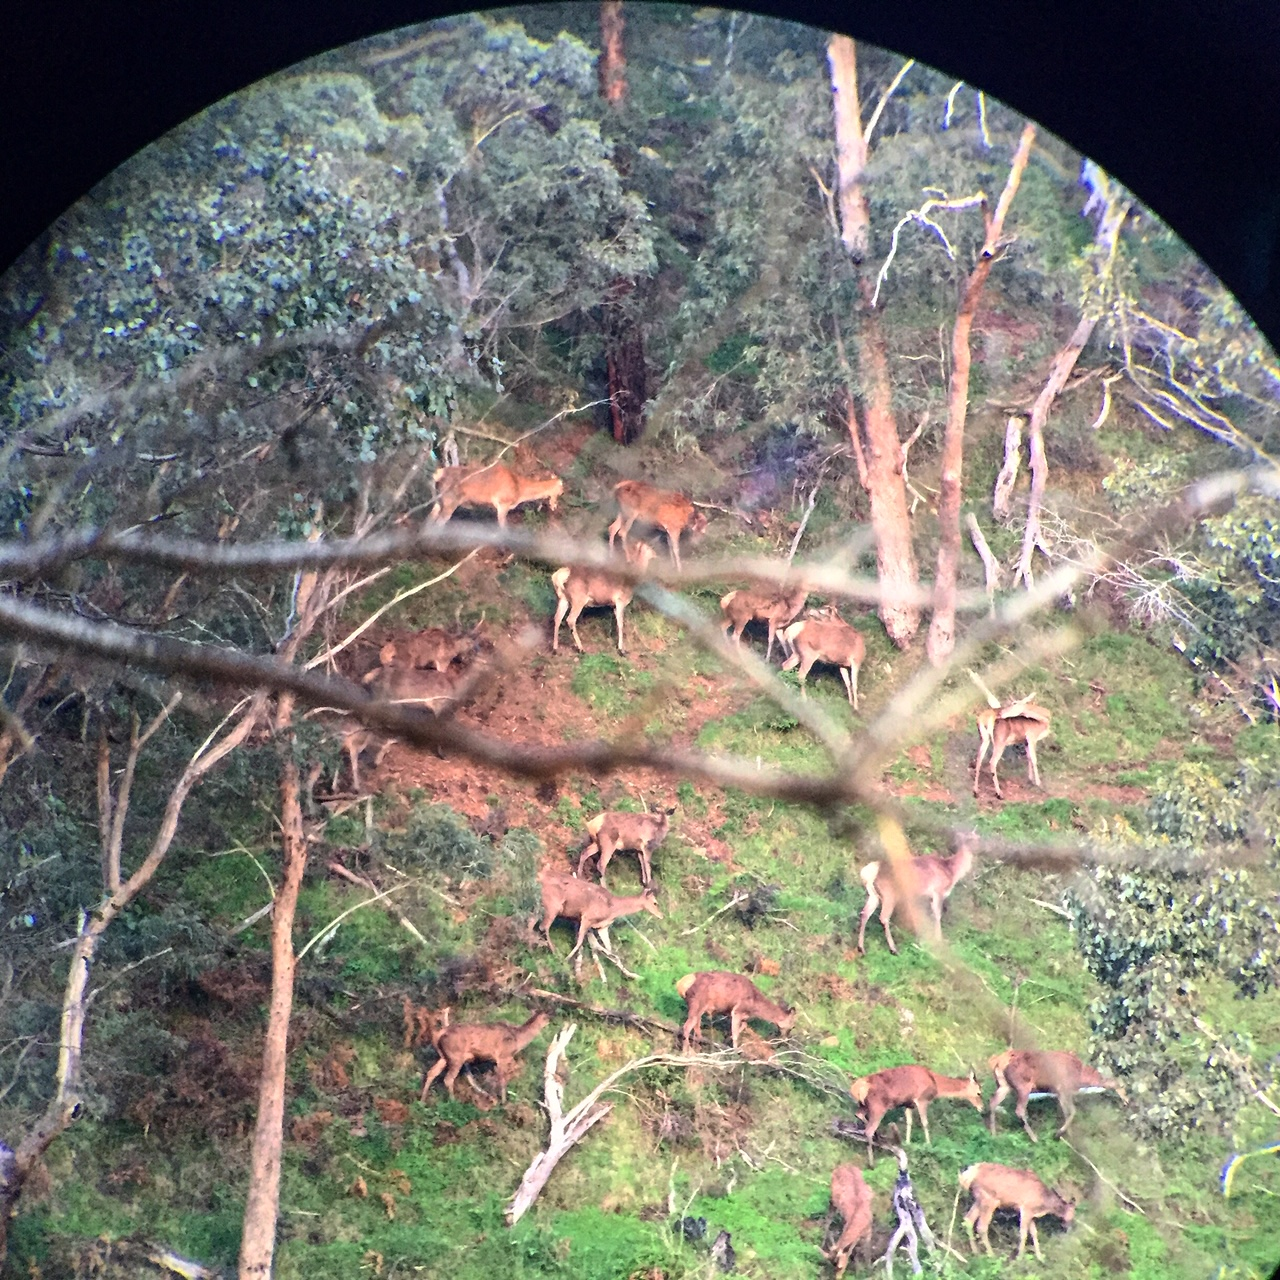 Sitting watching a herd of red deer through the Leica Televid82 spotting scope waiting to see a stag appear… Life here on the private holdings in the Australian high country.